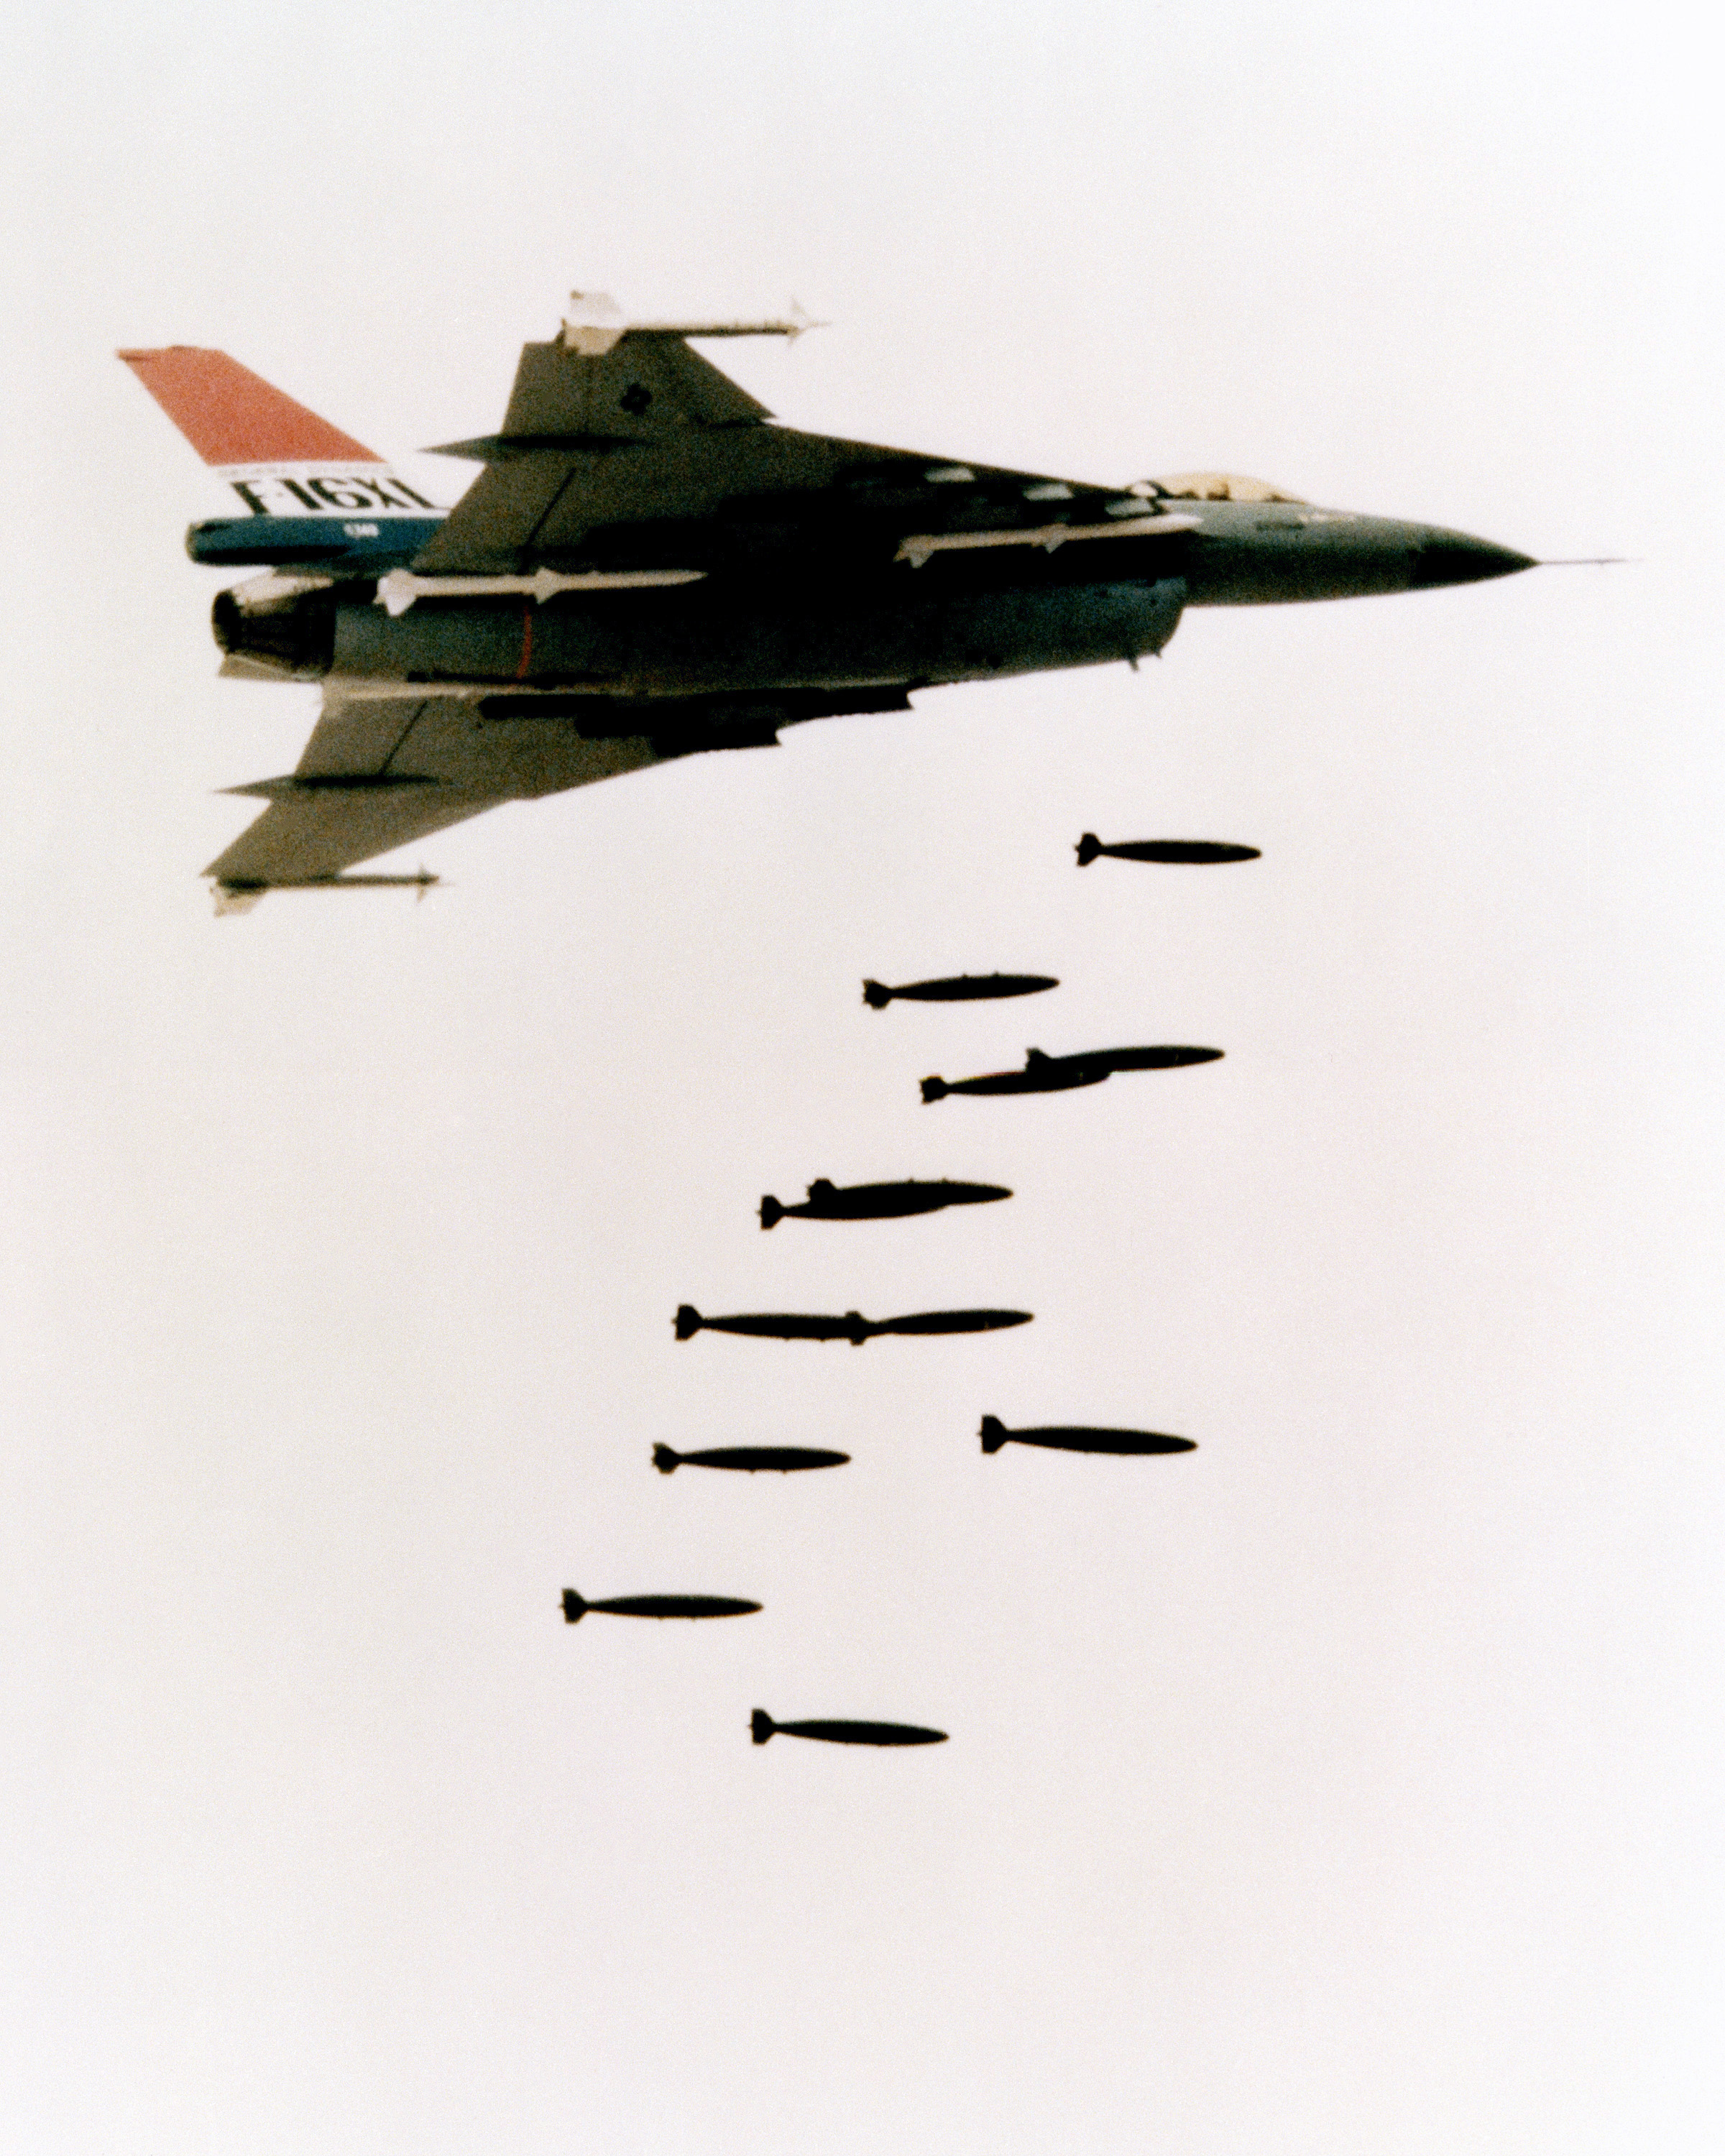 File:F-16XL dropping bombs.jpg - Wikimedia Commons